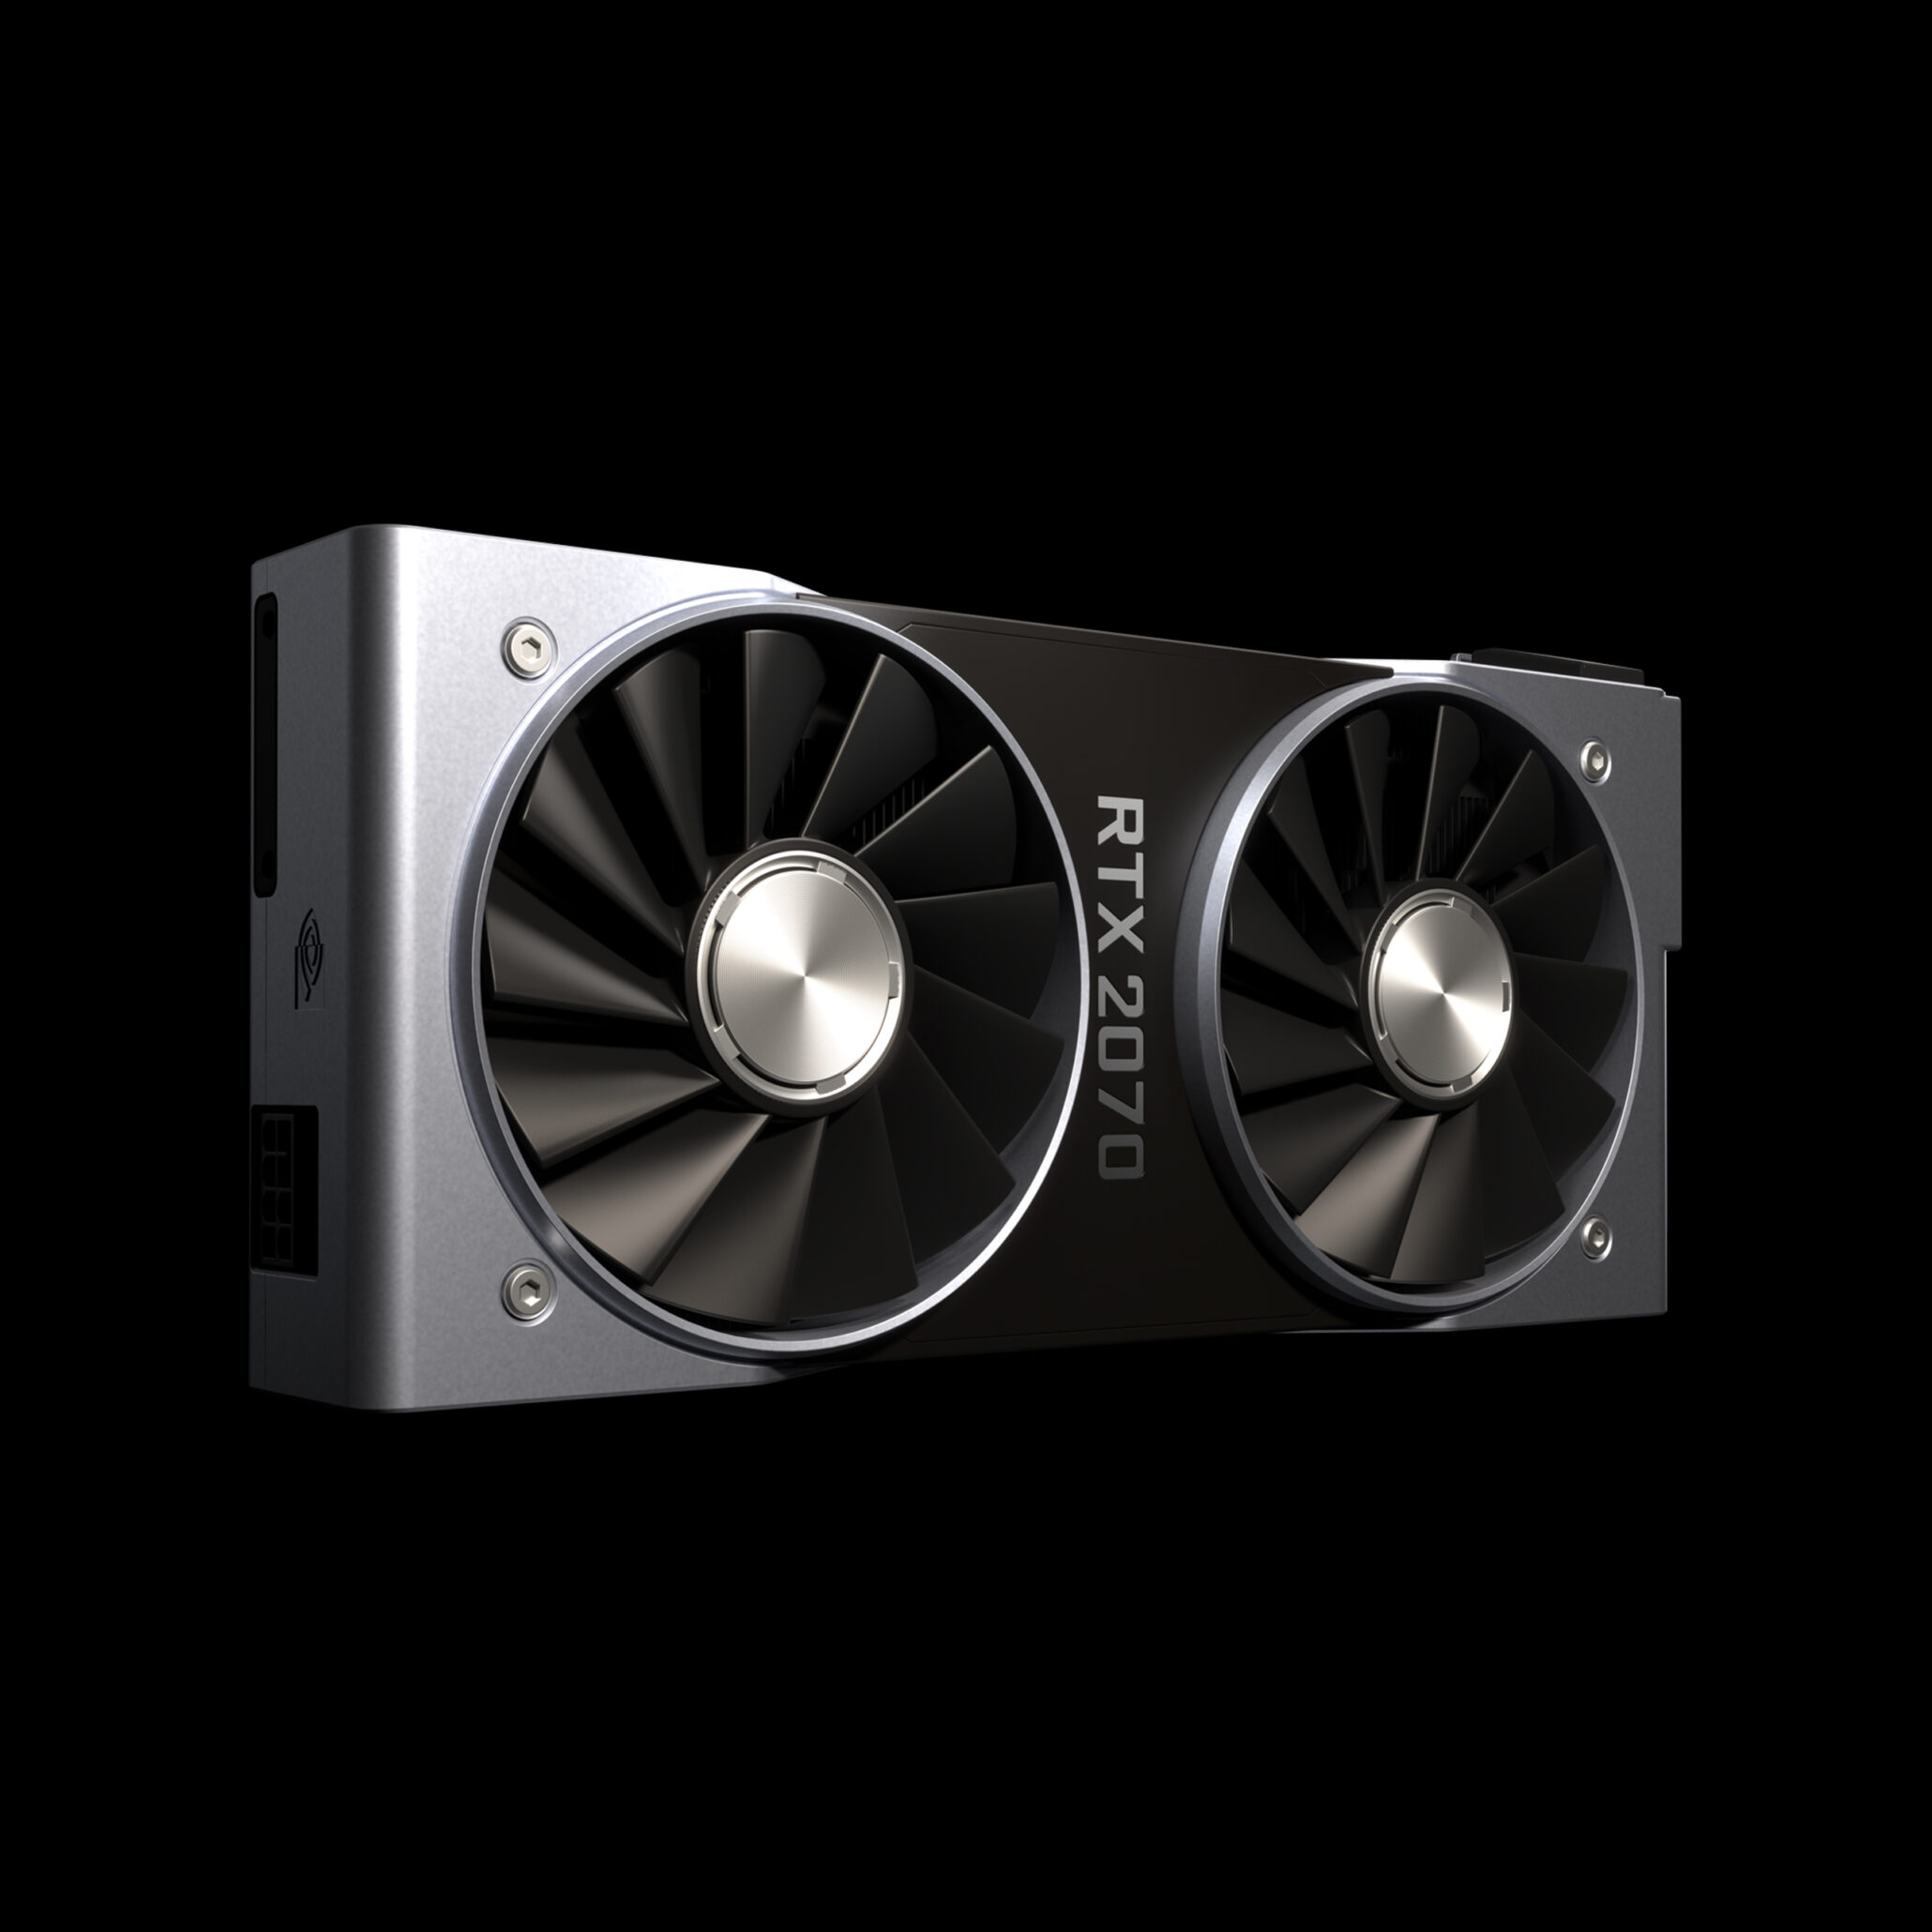 NVIDIA GeForce RTX 2070 With 8GB vRAM Launching On October